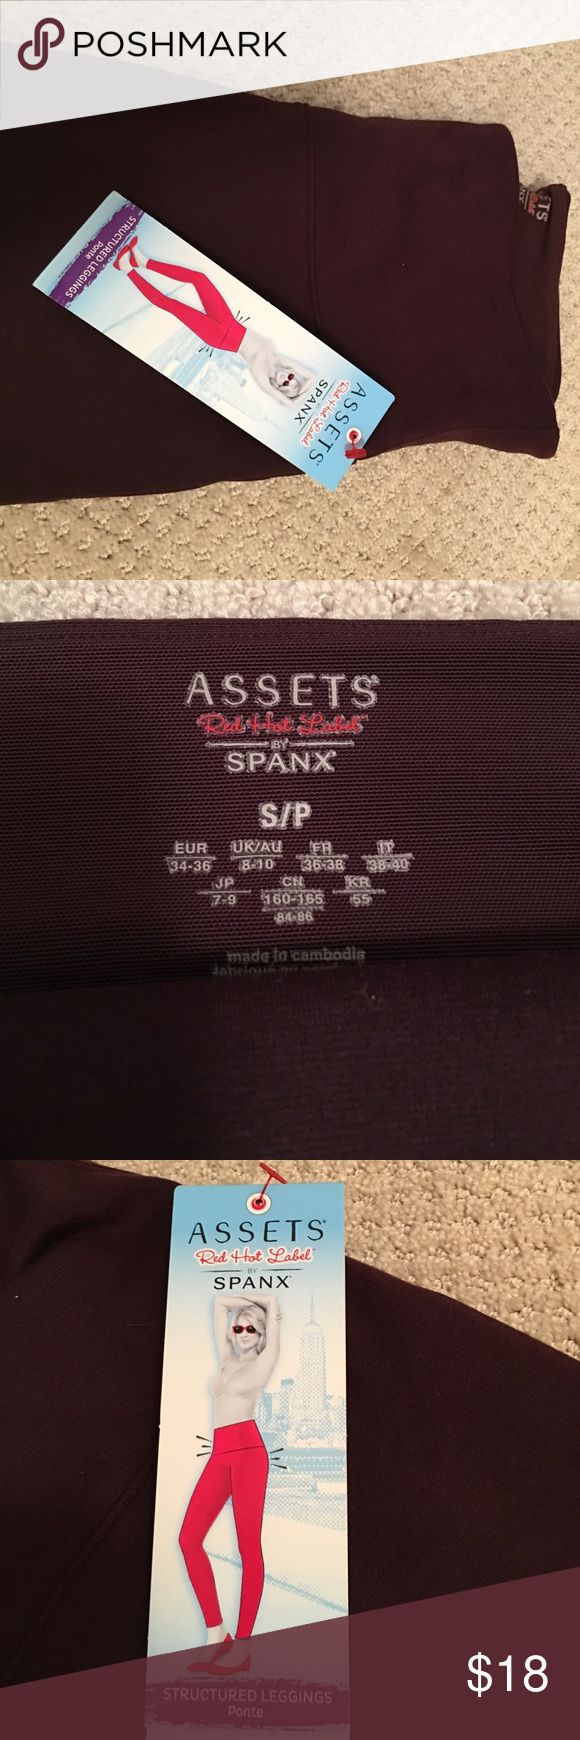 Spanx leggings Spanx structured leggings. New with tags. Color is brownish/ burgundy SPANX Pants Leggings